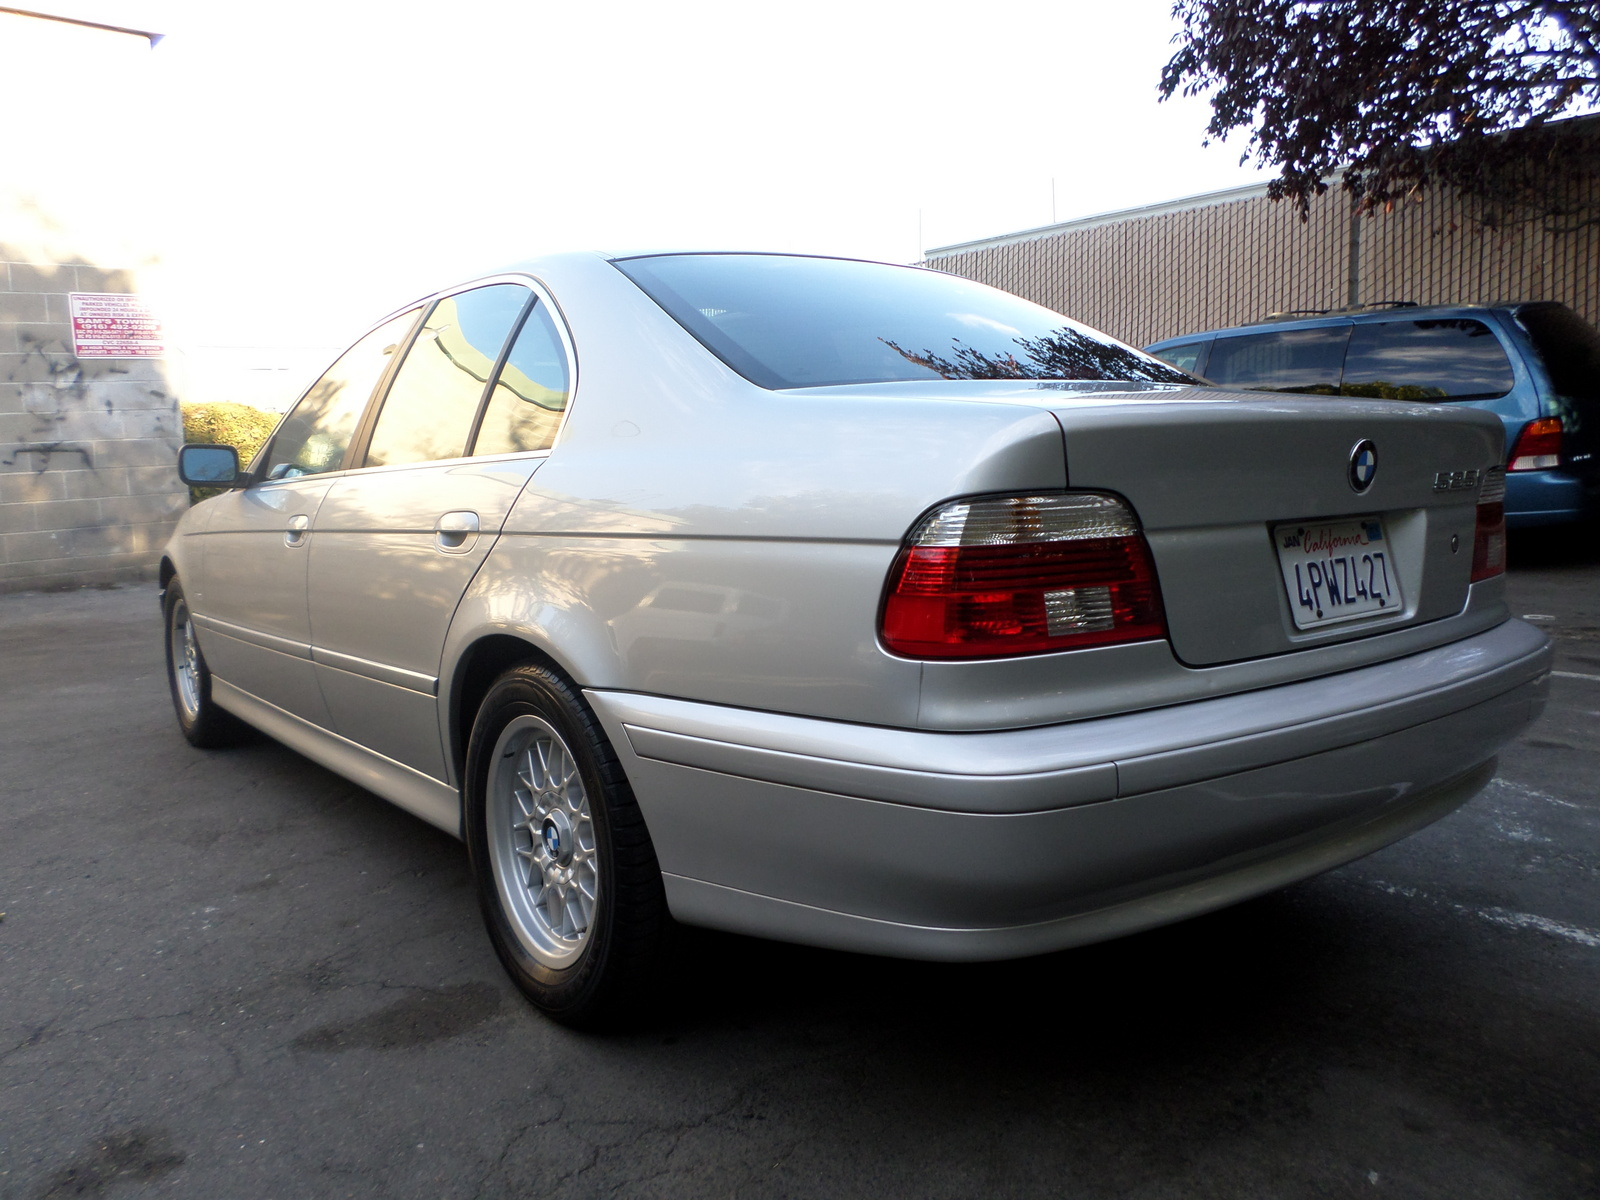 BMW 5 series 525i 2001 photo - 8